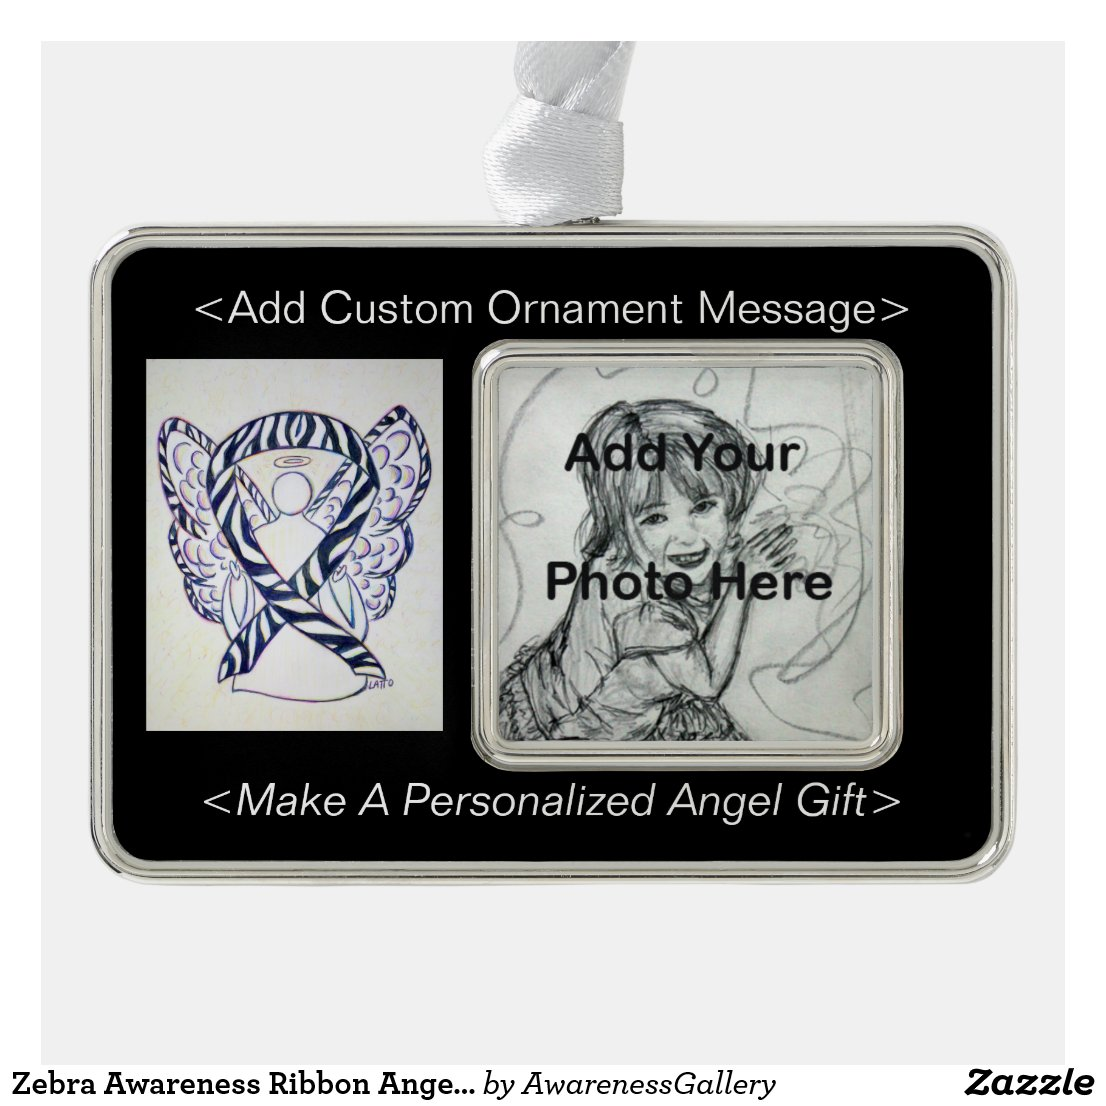 Zebra Awareness Ribbon Angel Ornament